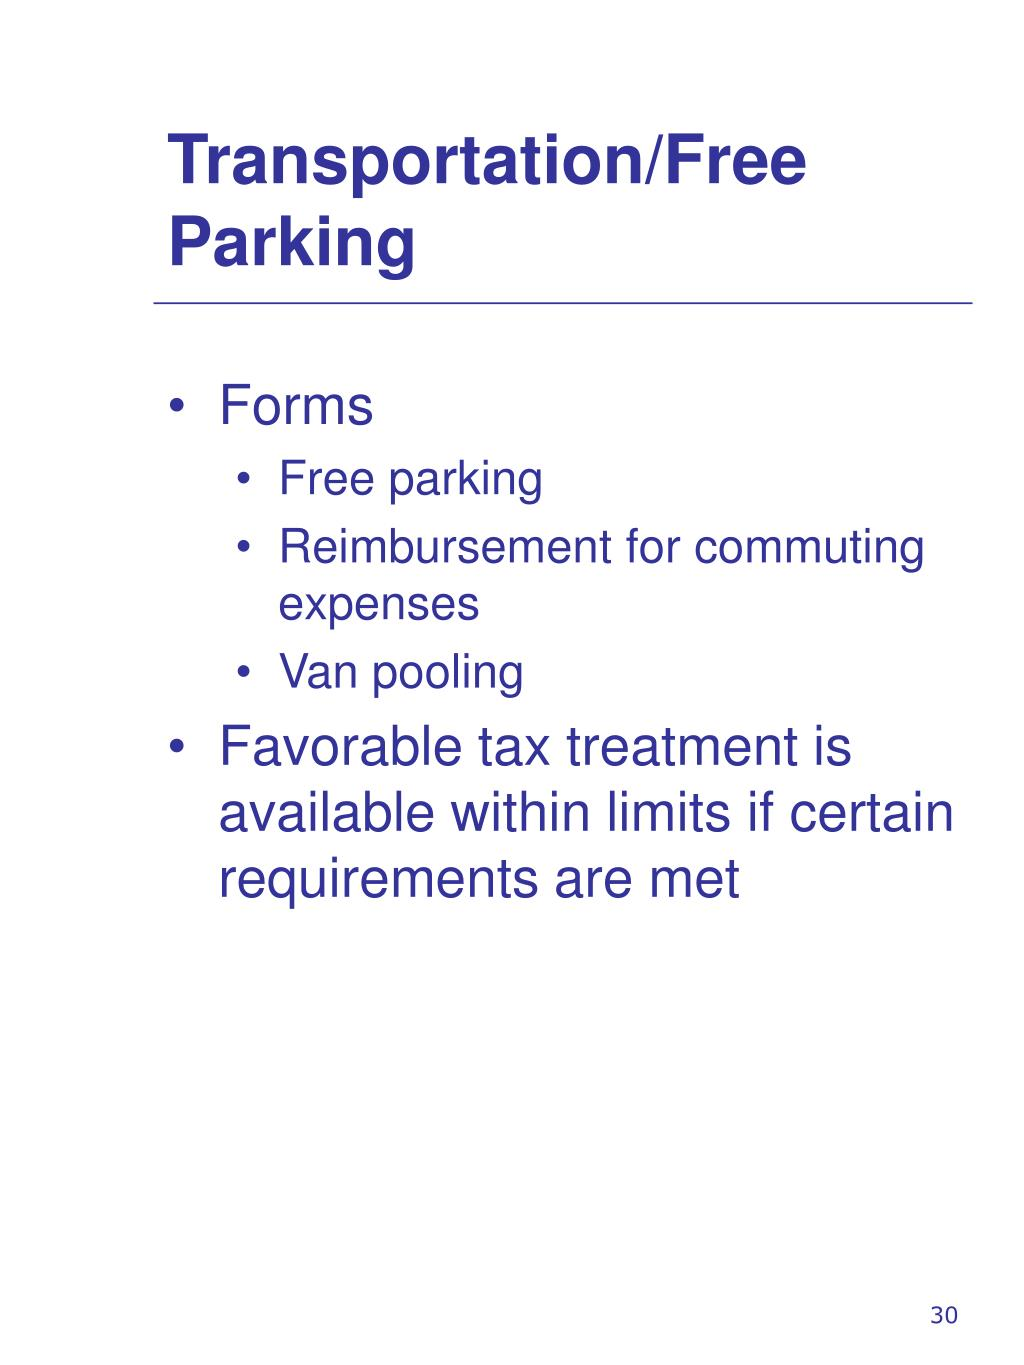 Transportation/Free Parking